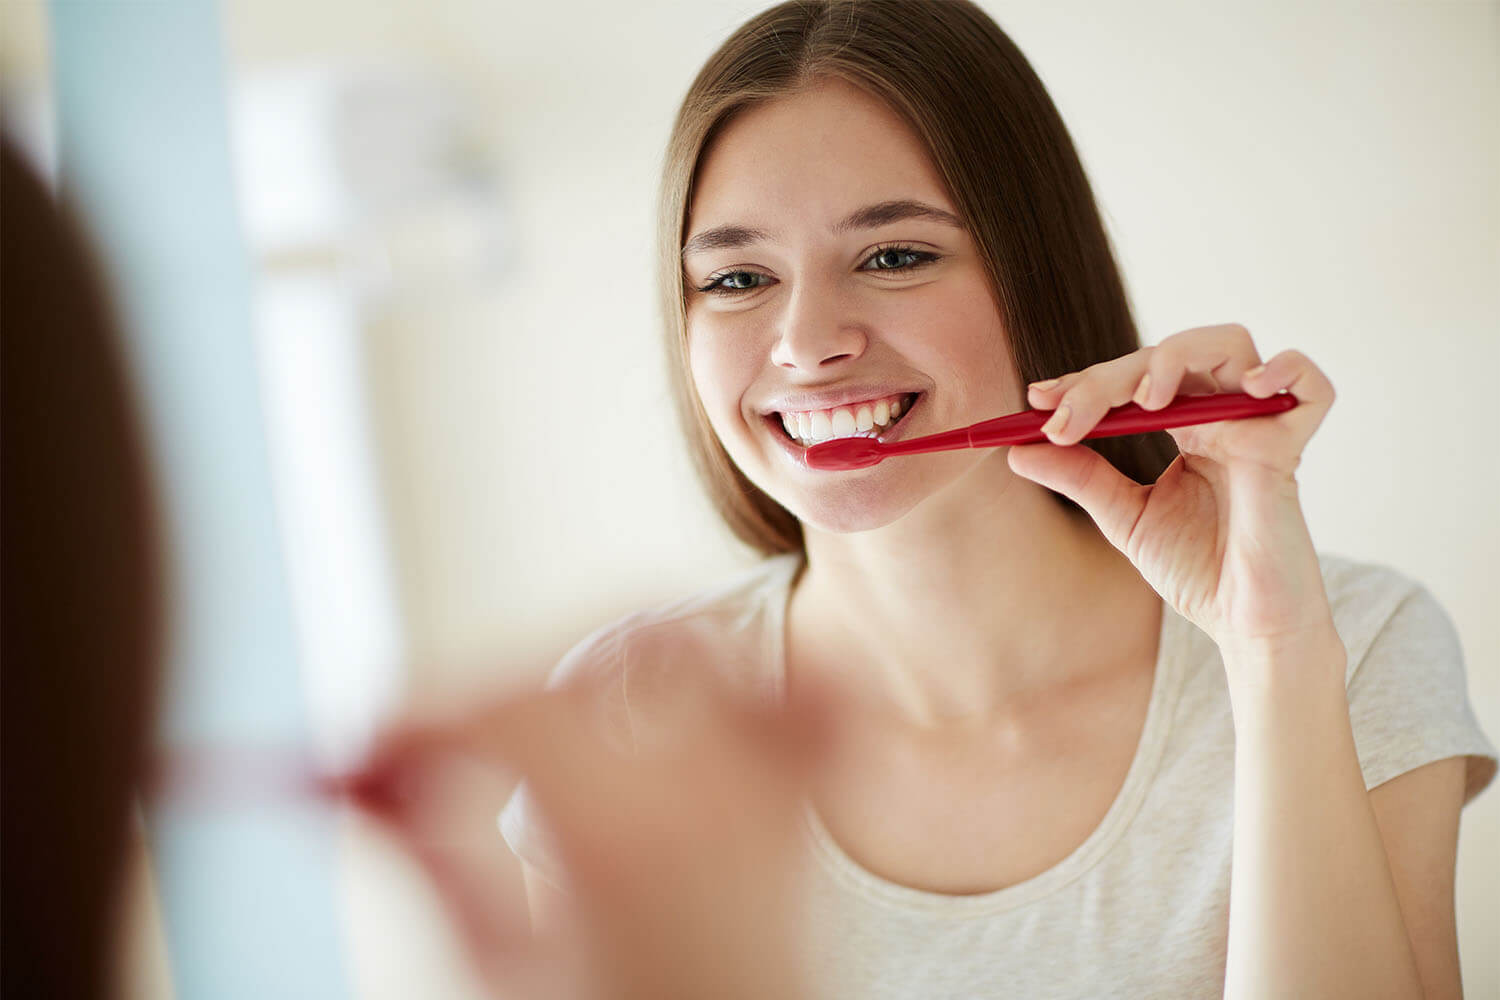 A smiling woman brushing her teeth